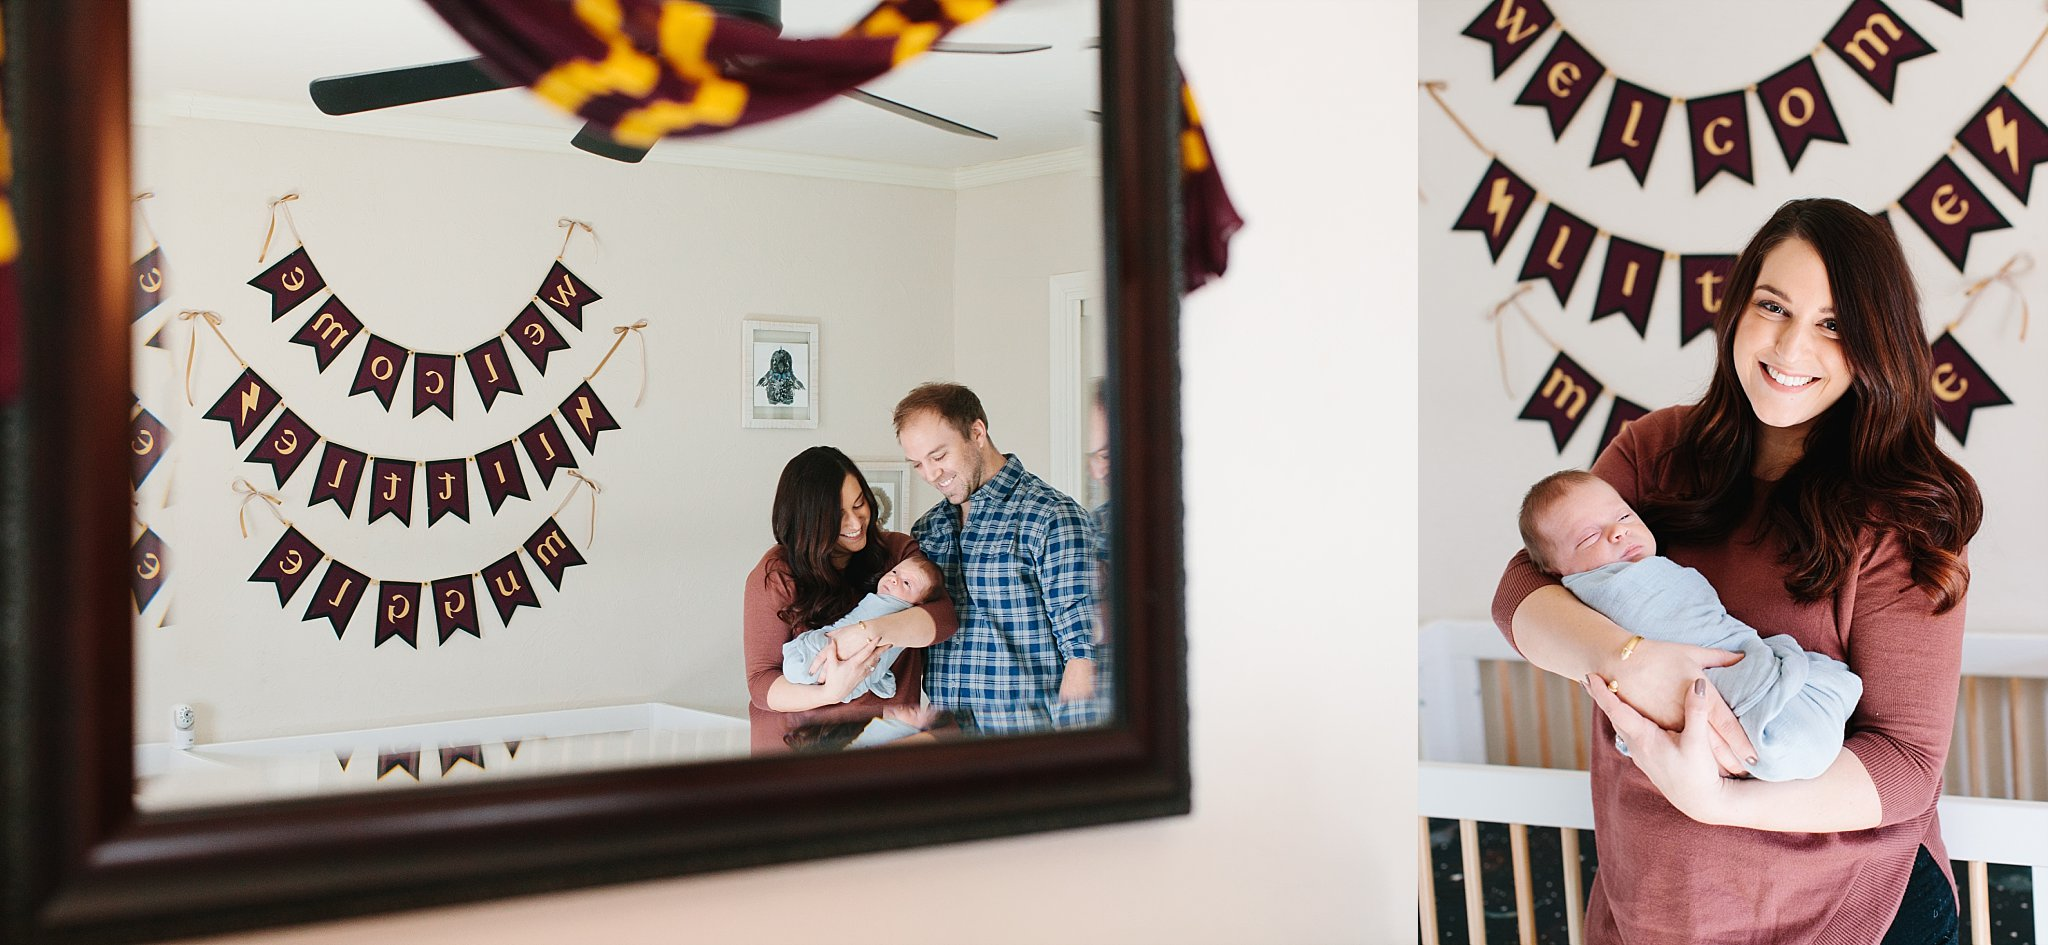 oklahoma-city-newborn-lifestyle-photographer-harry-potter-nursery.jpg